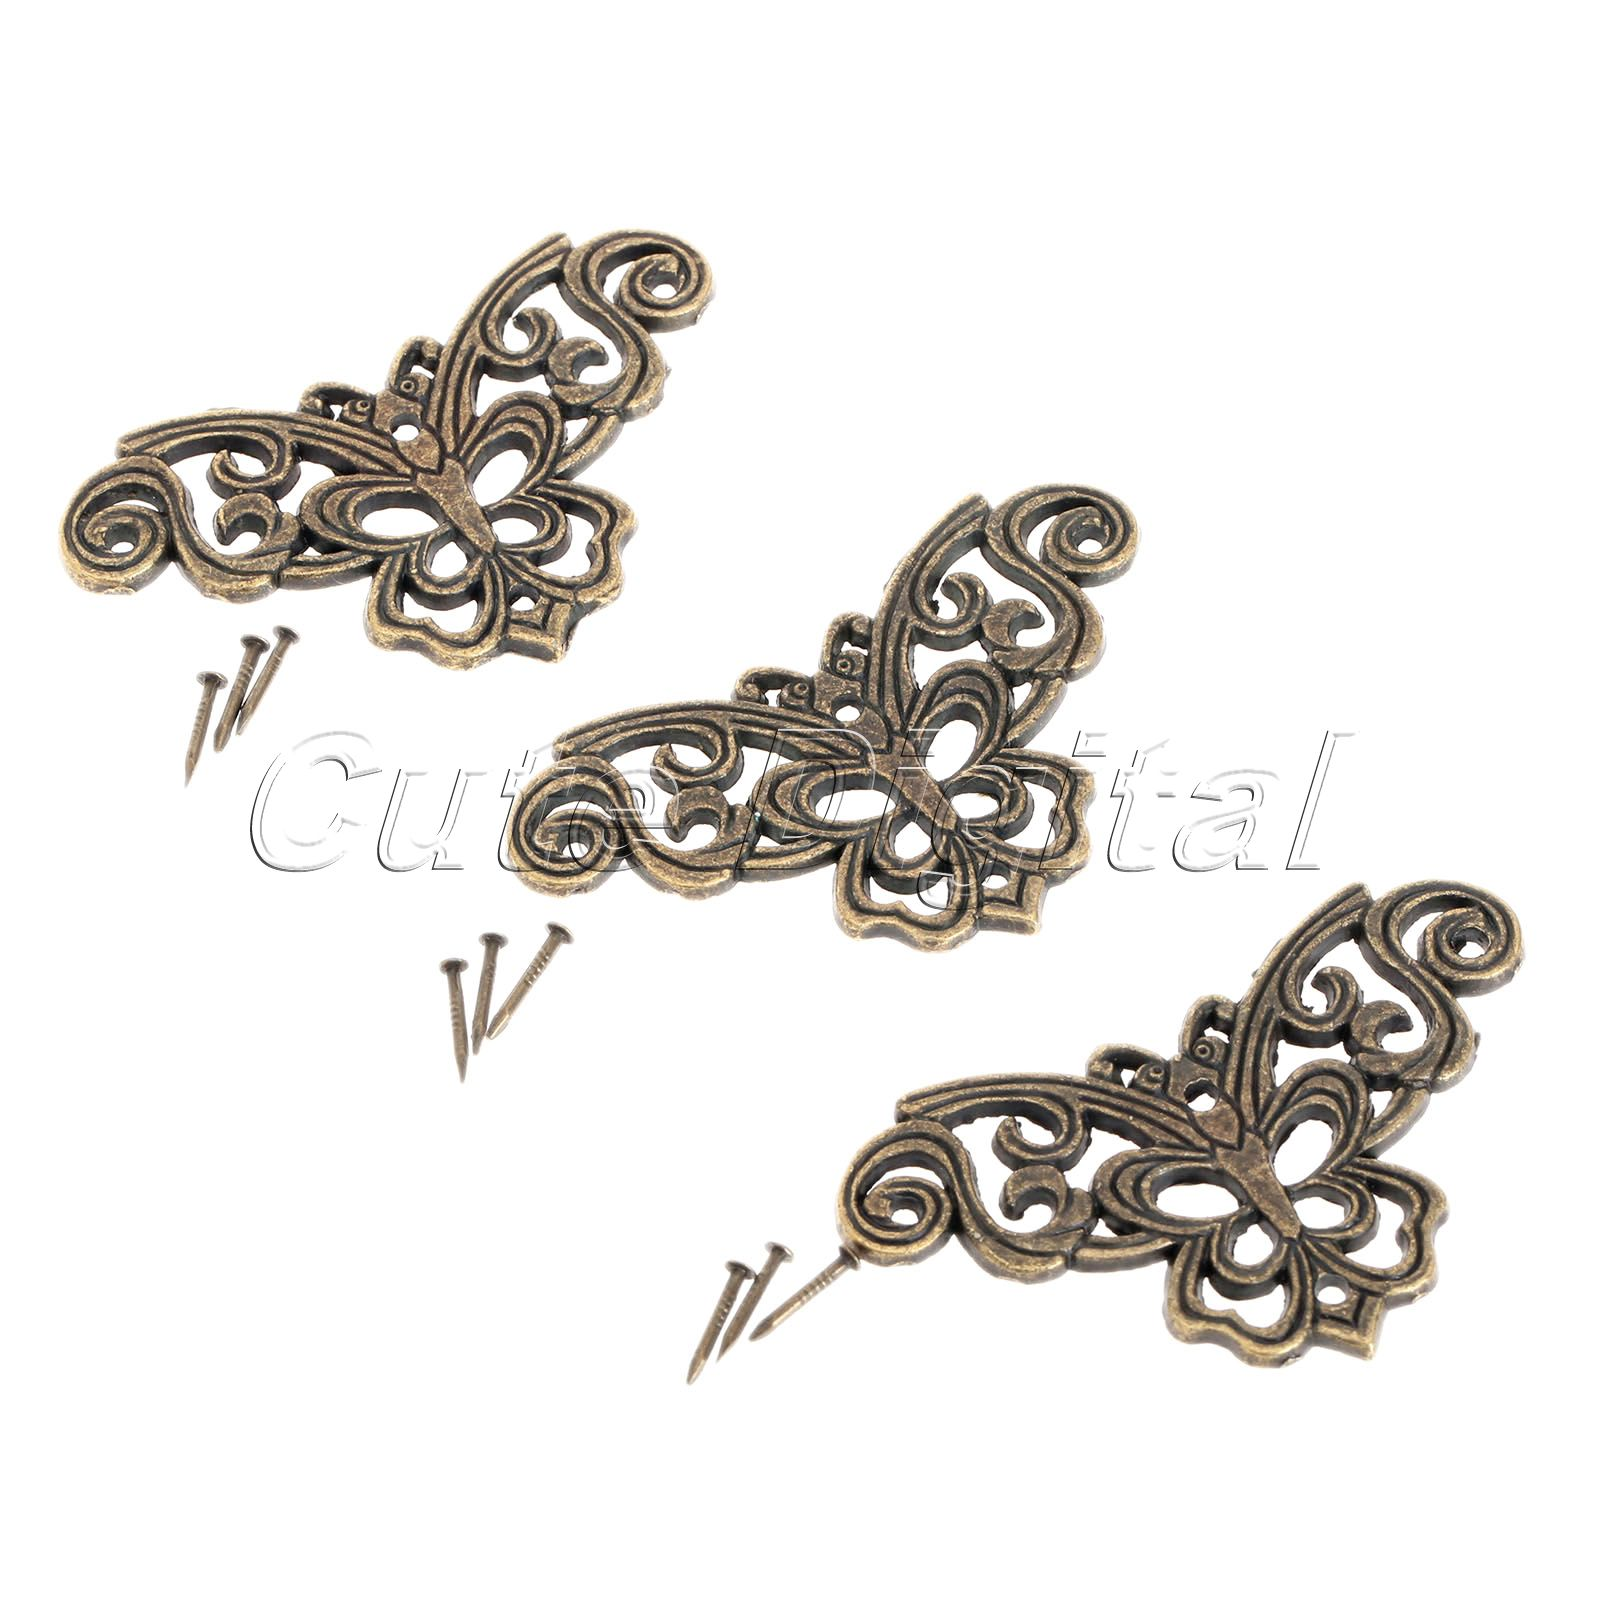 Pcs zinc alloy metal decorative corner bracket luggage